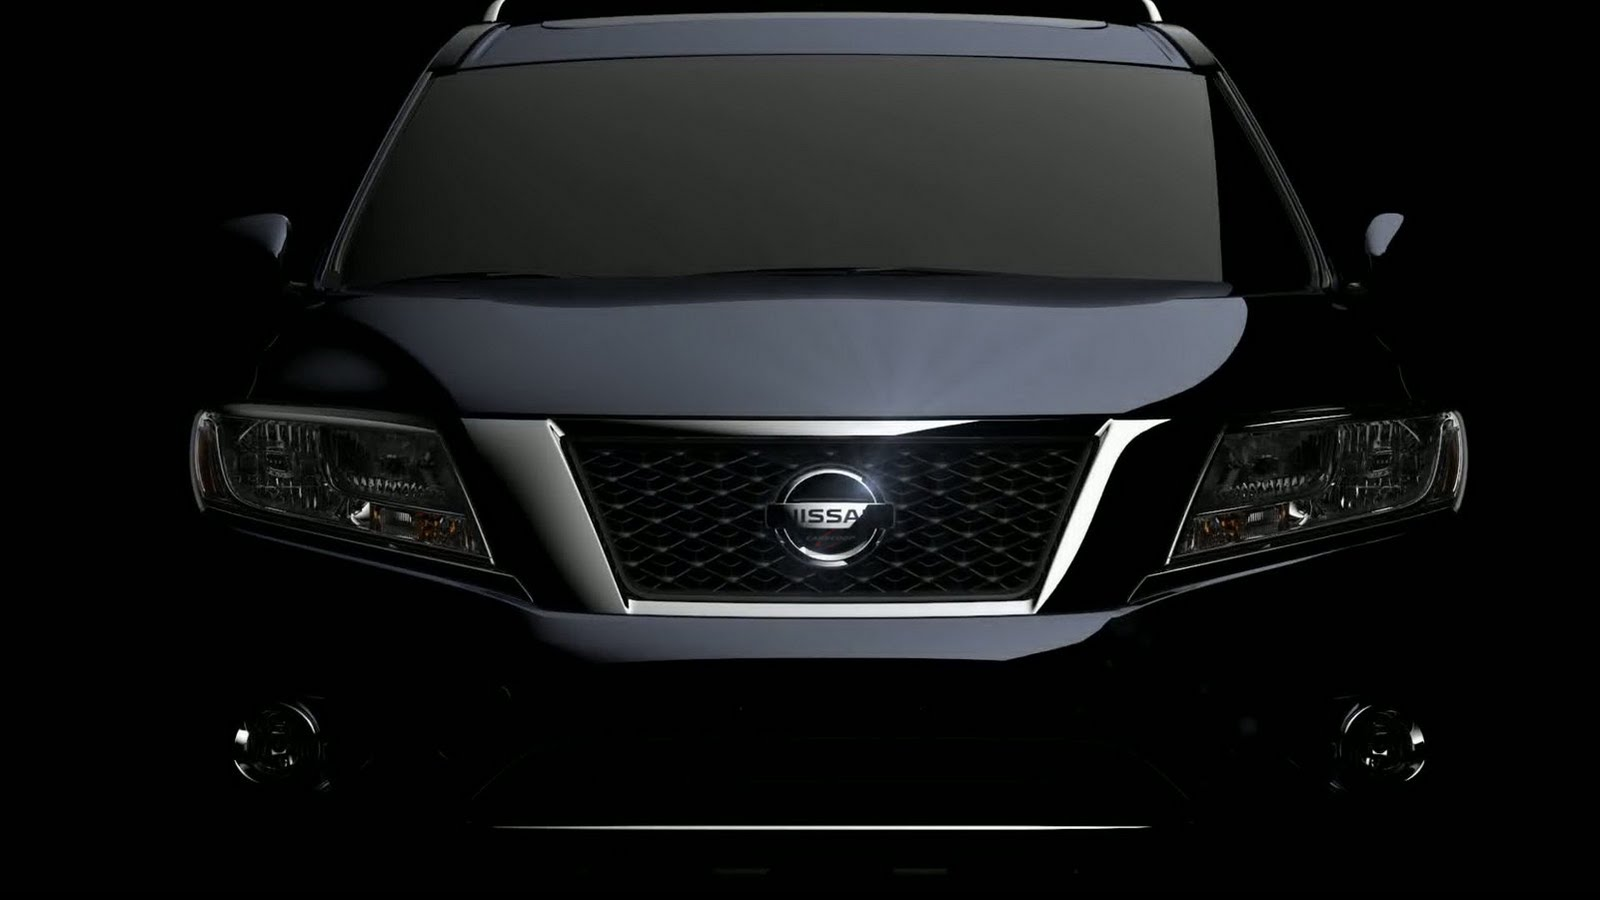 2013 Nissan Pathfinder 2013 Nissan Pathfinder Reflects Image of Infinity's JX Crossover